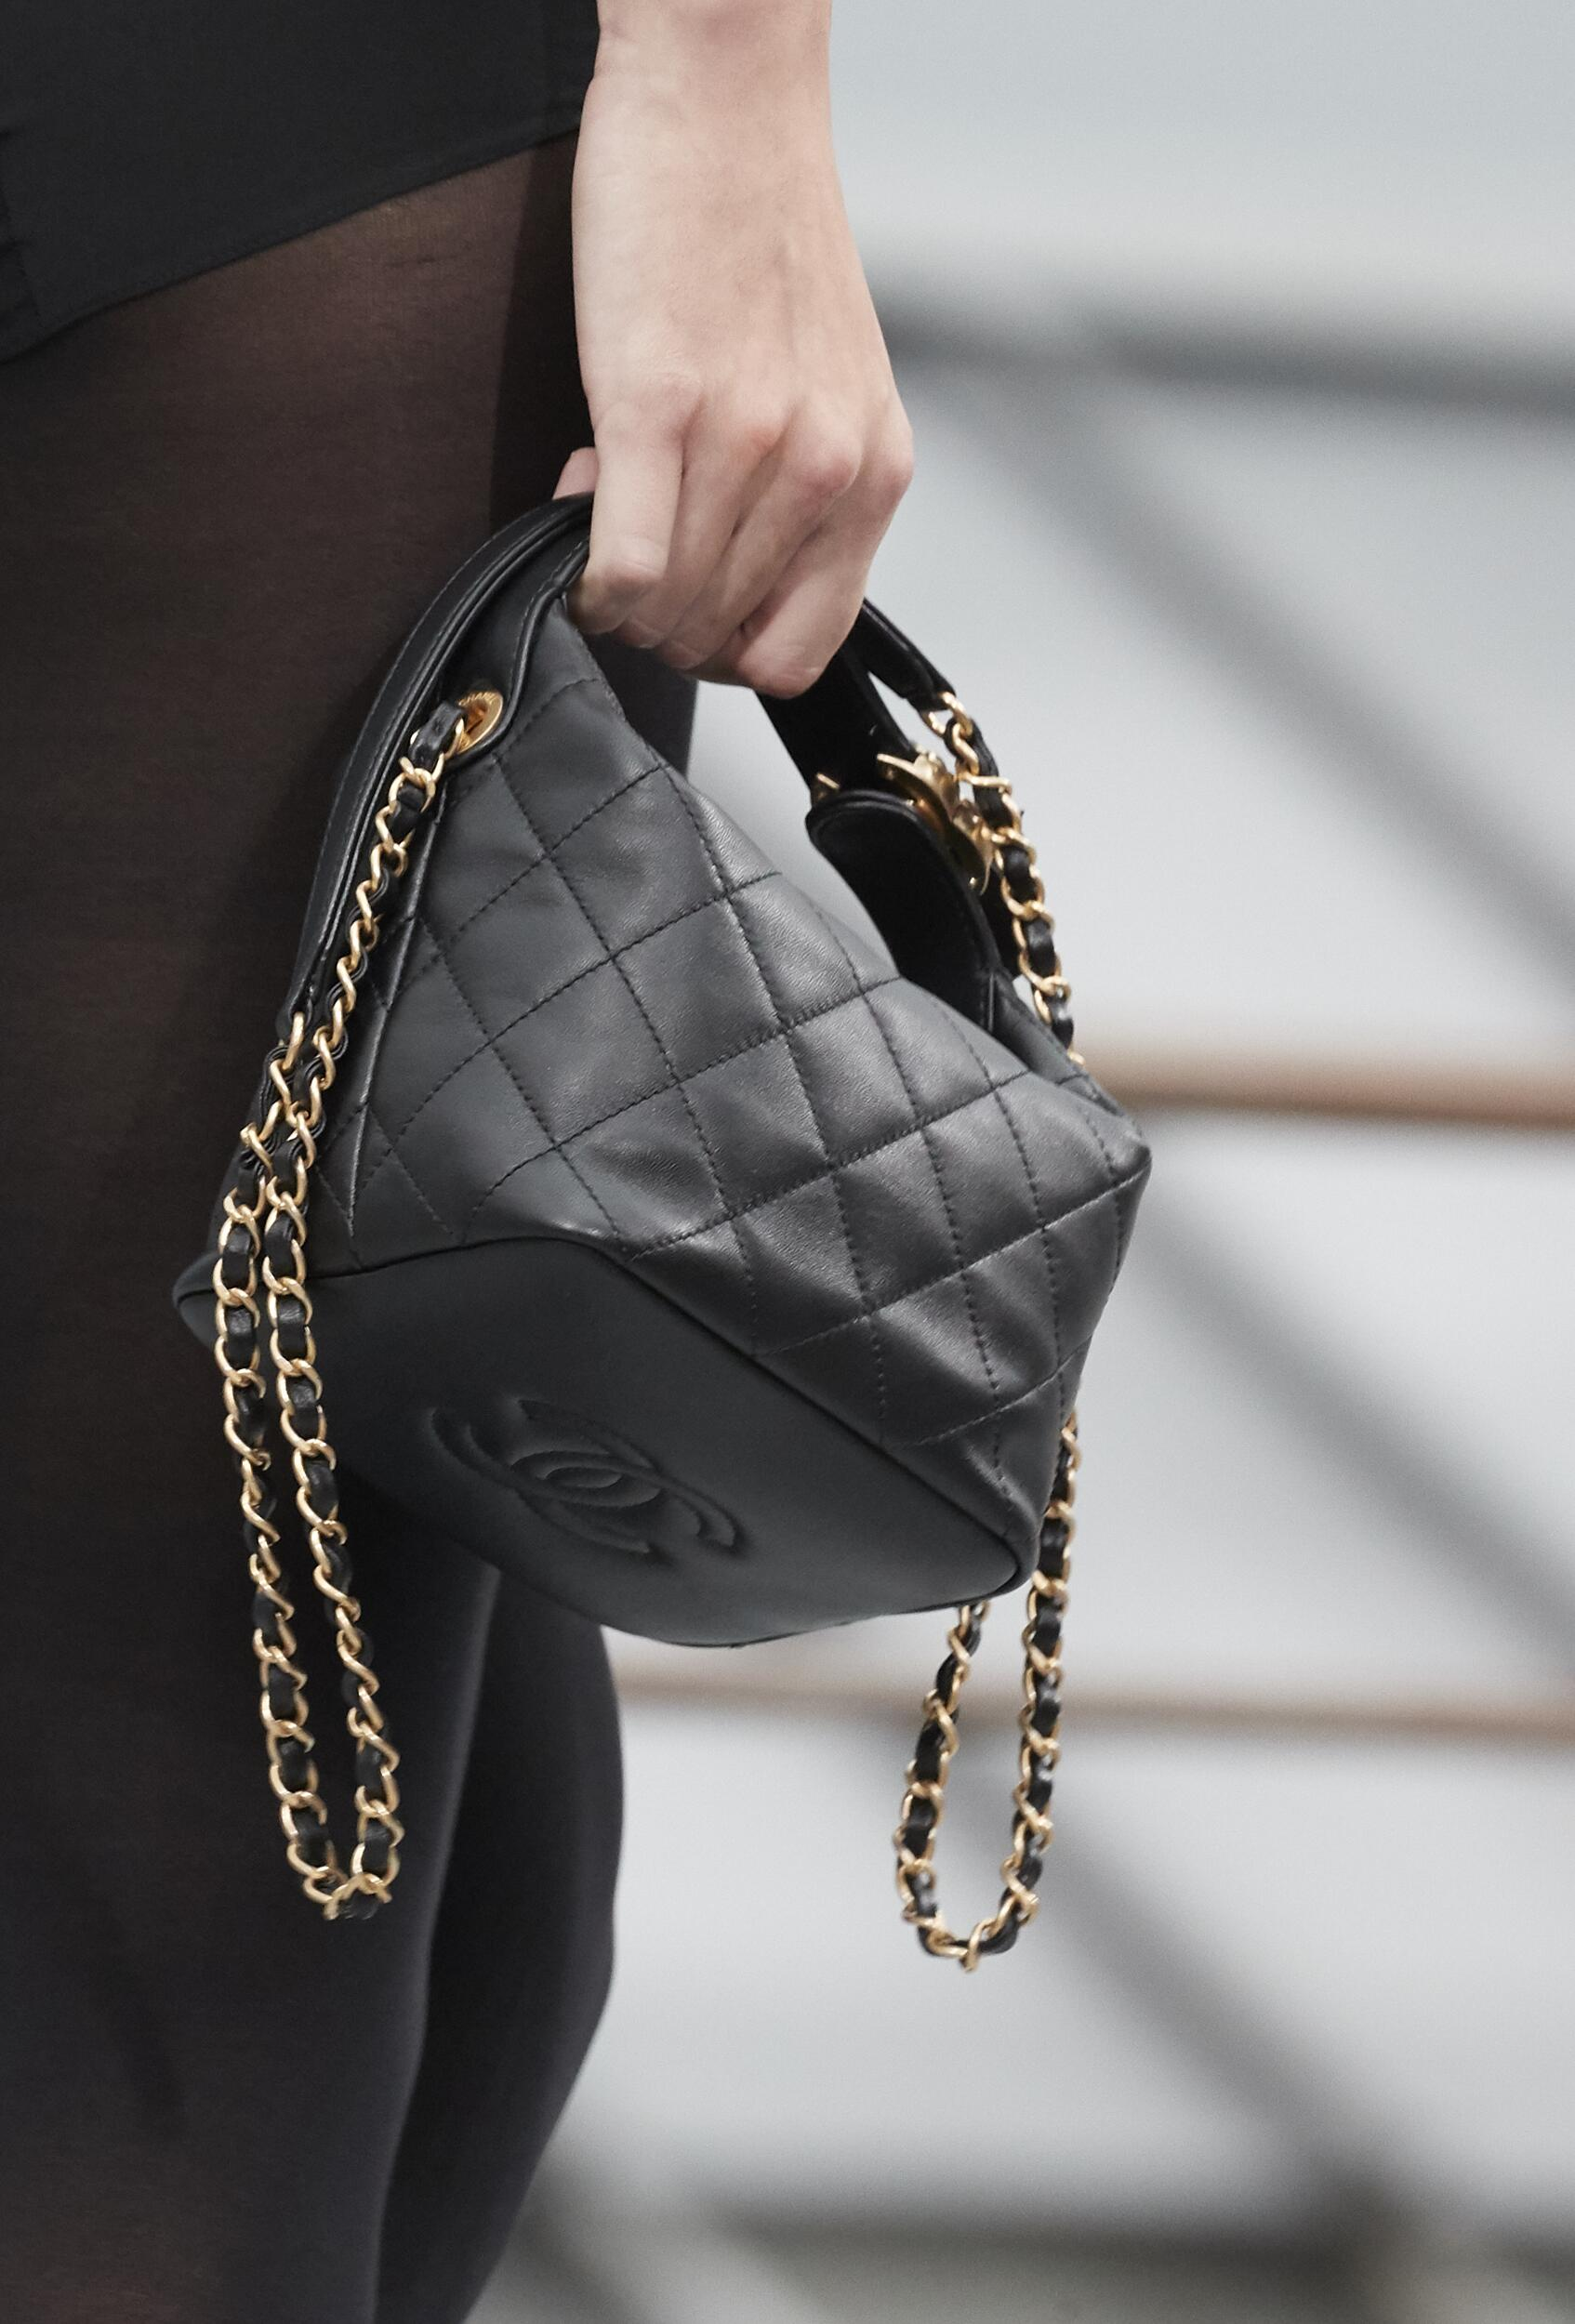 Spring Summer Bags Trends 2020 Chanel